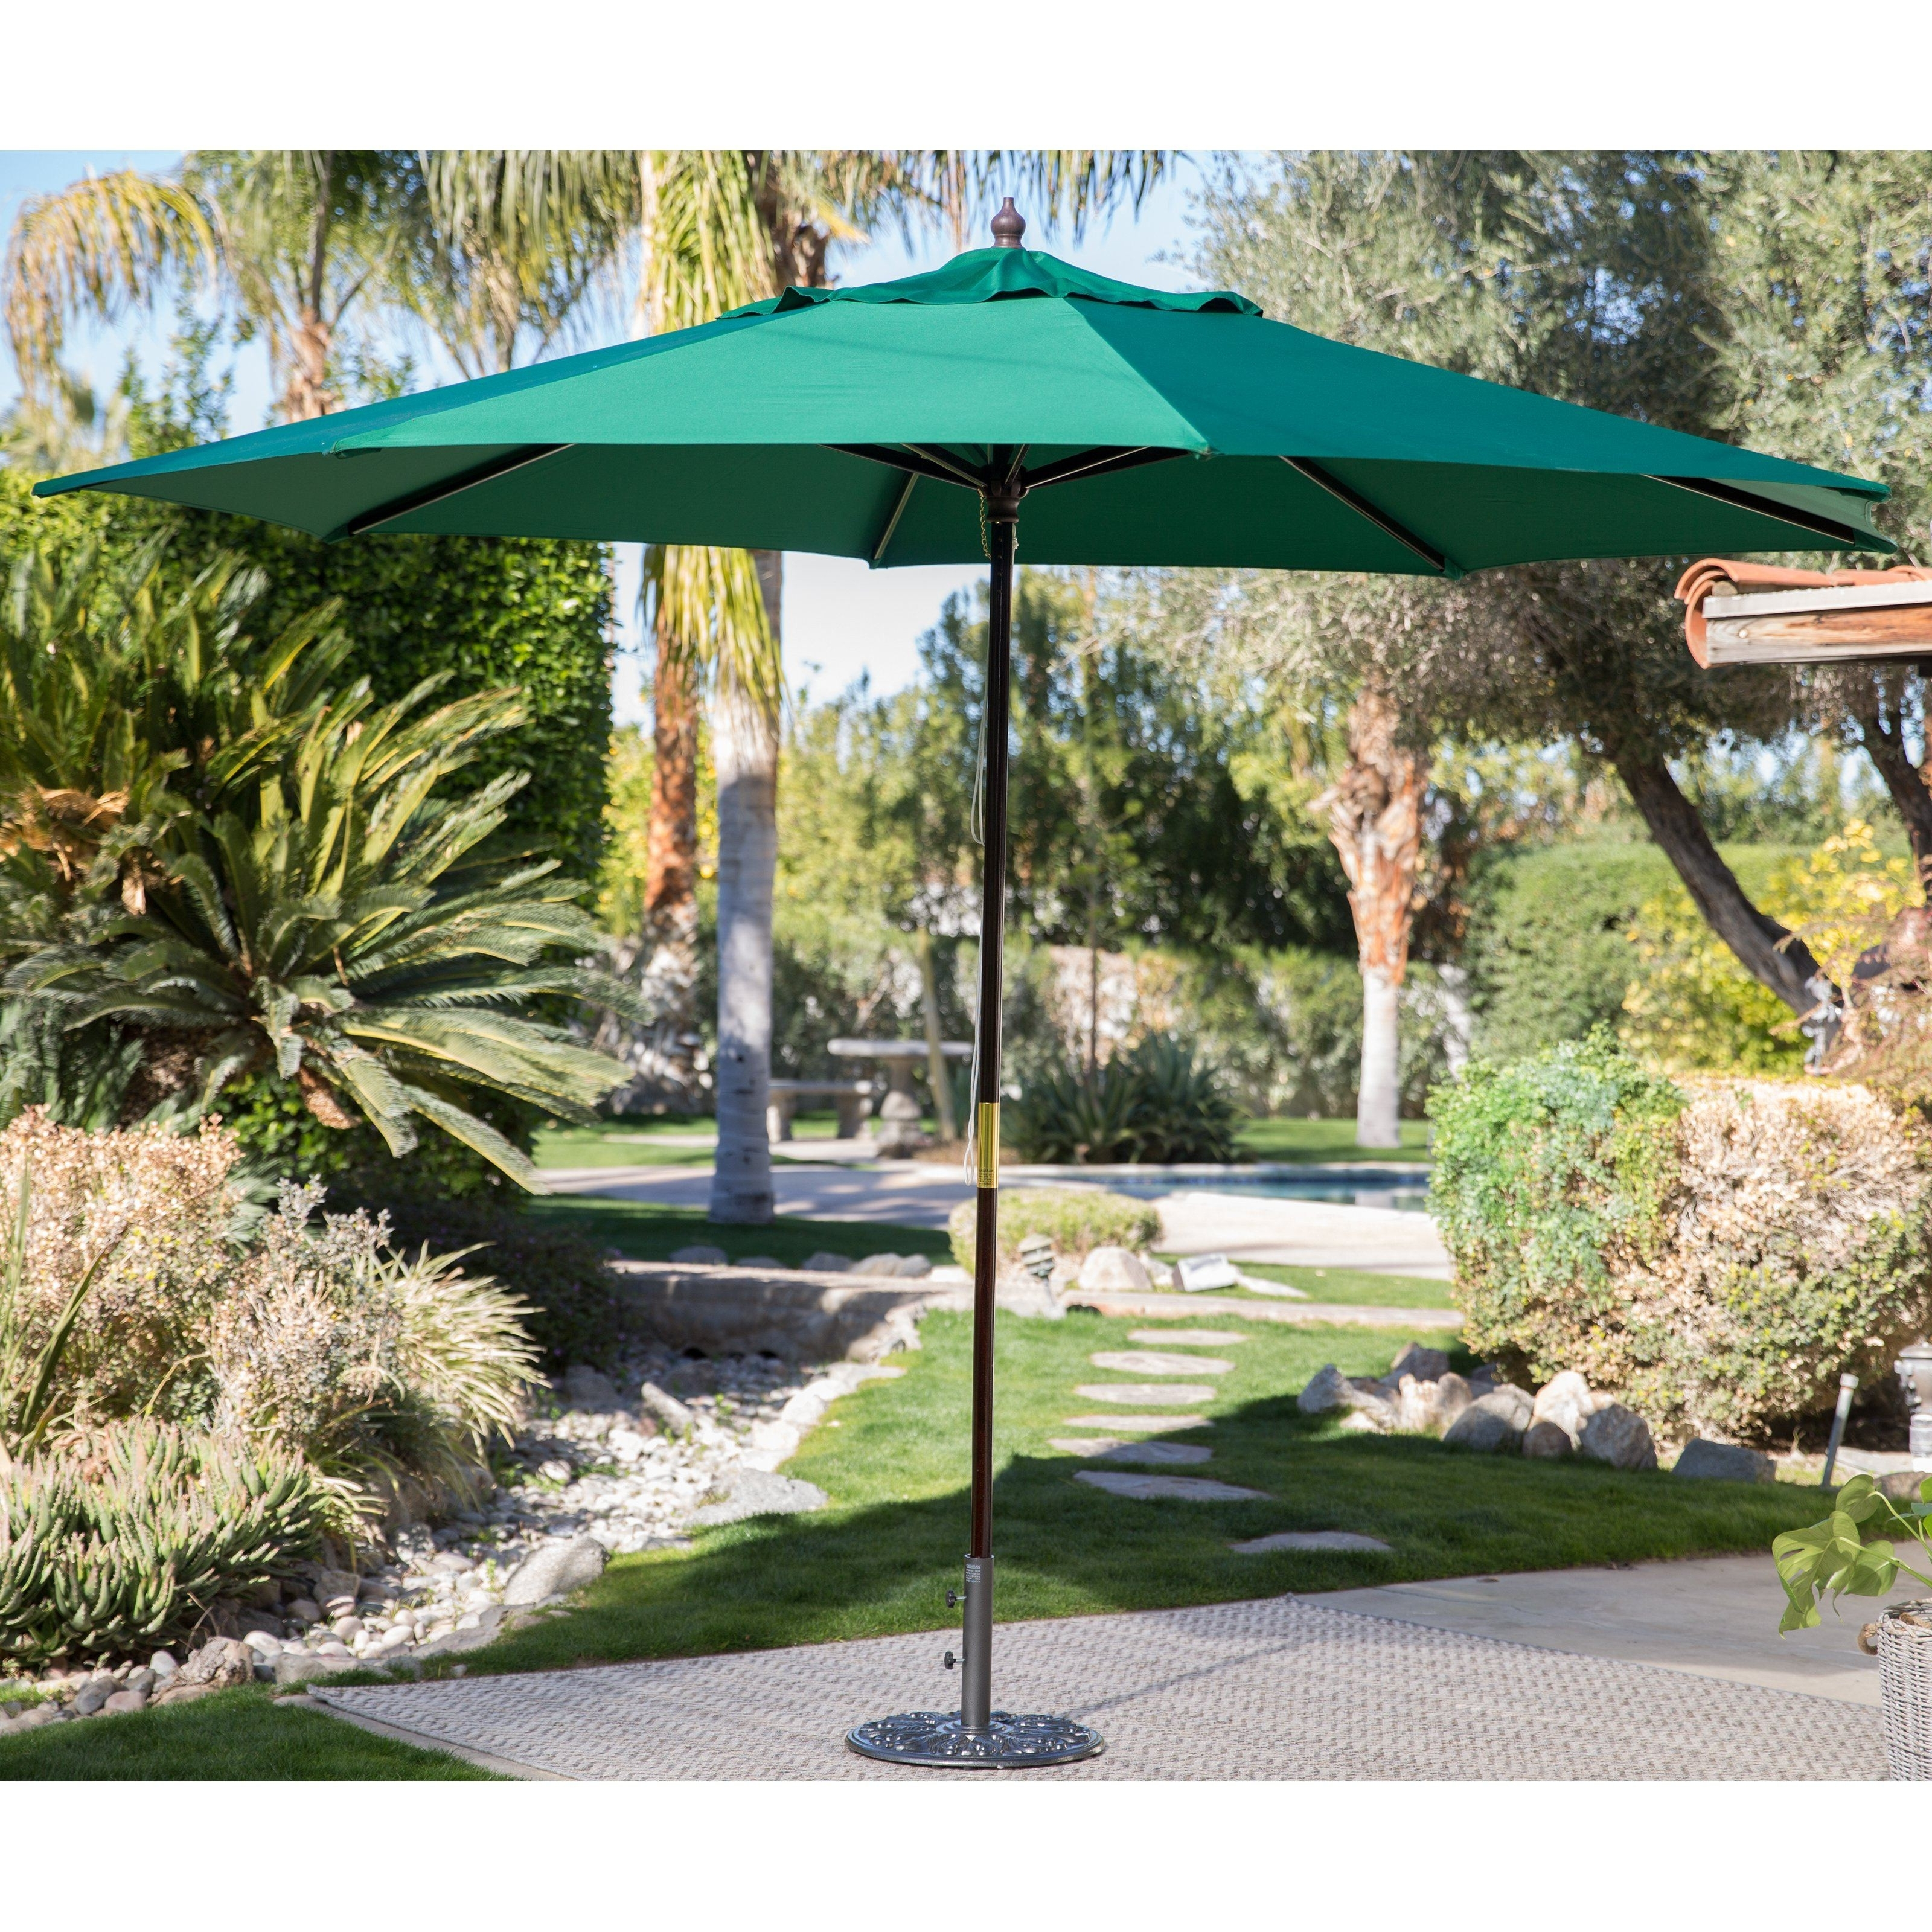 Green Patio Umbrellas Throughout Famous Coral Coast 8 X 11 Ft (View 10 of 20)